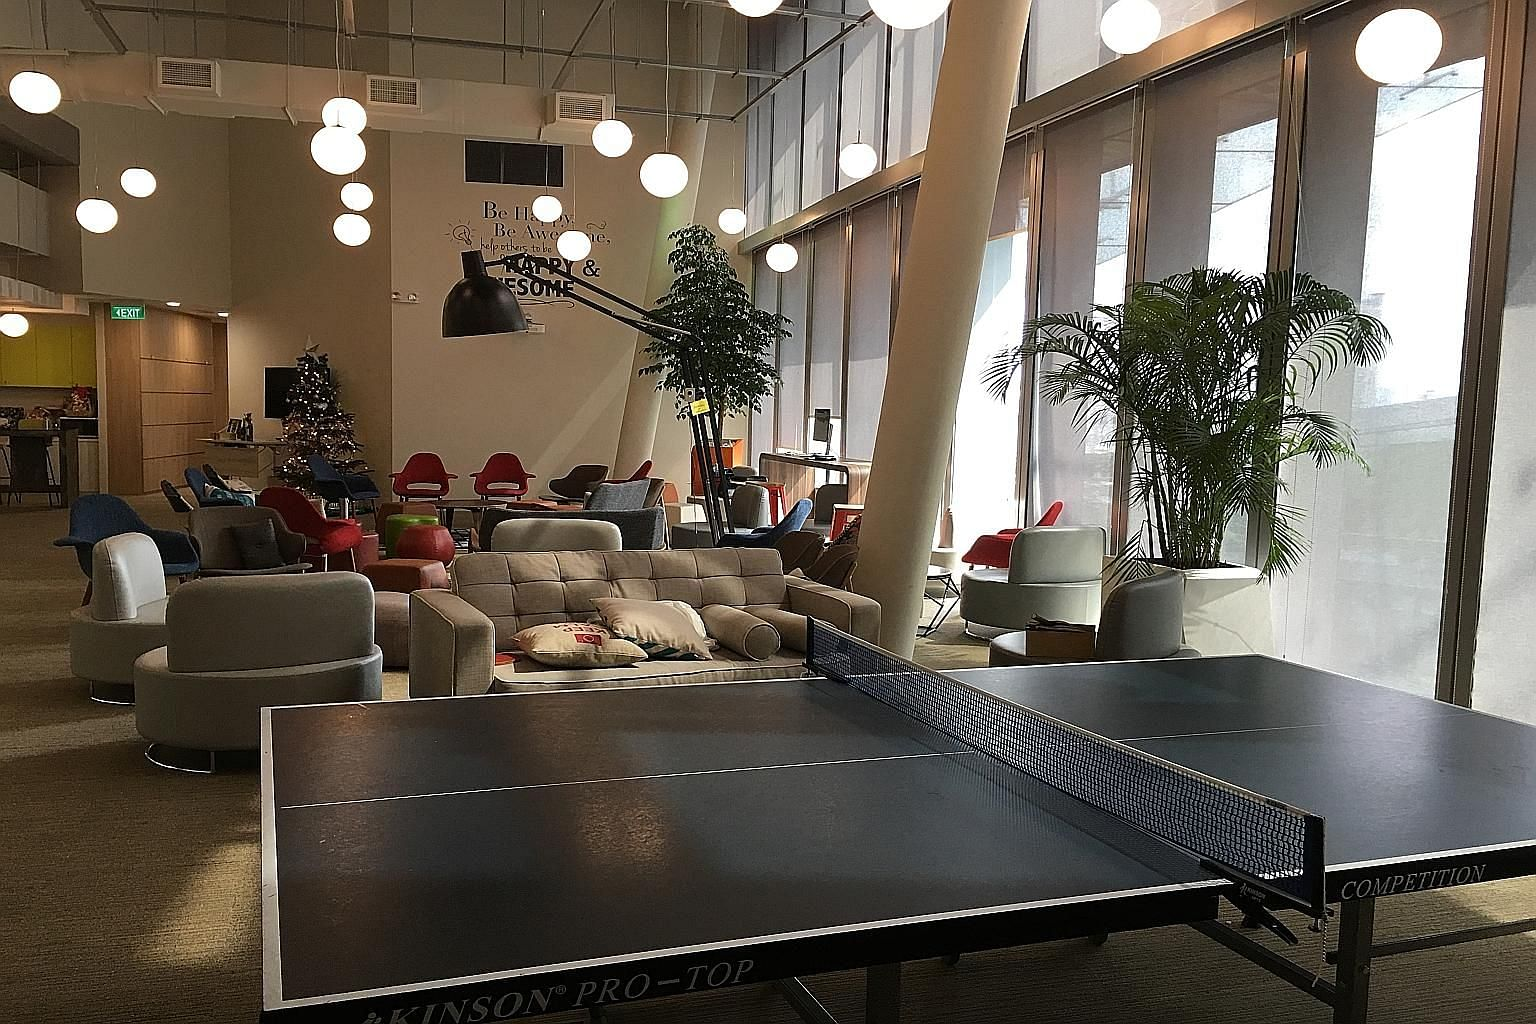 Open spaces and a ping pong table help create a conducive environment for a crack IT team of 90 tasked with refining government websites and apps more regularly as citizens' needs change.